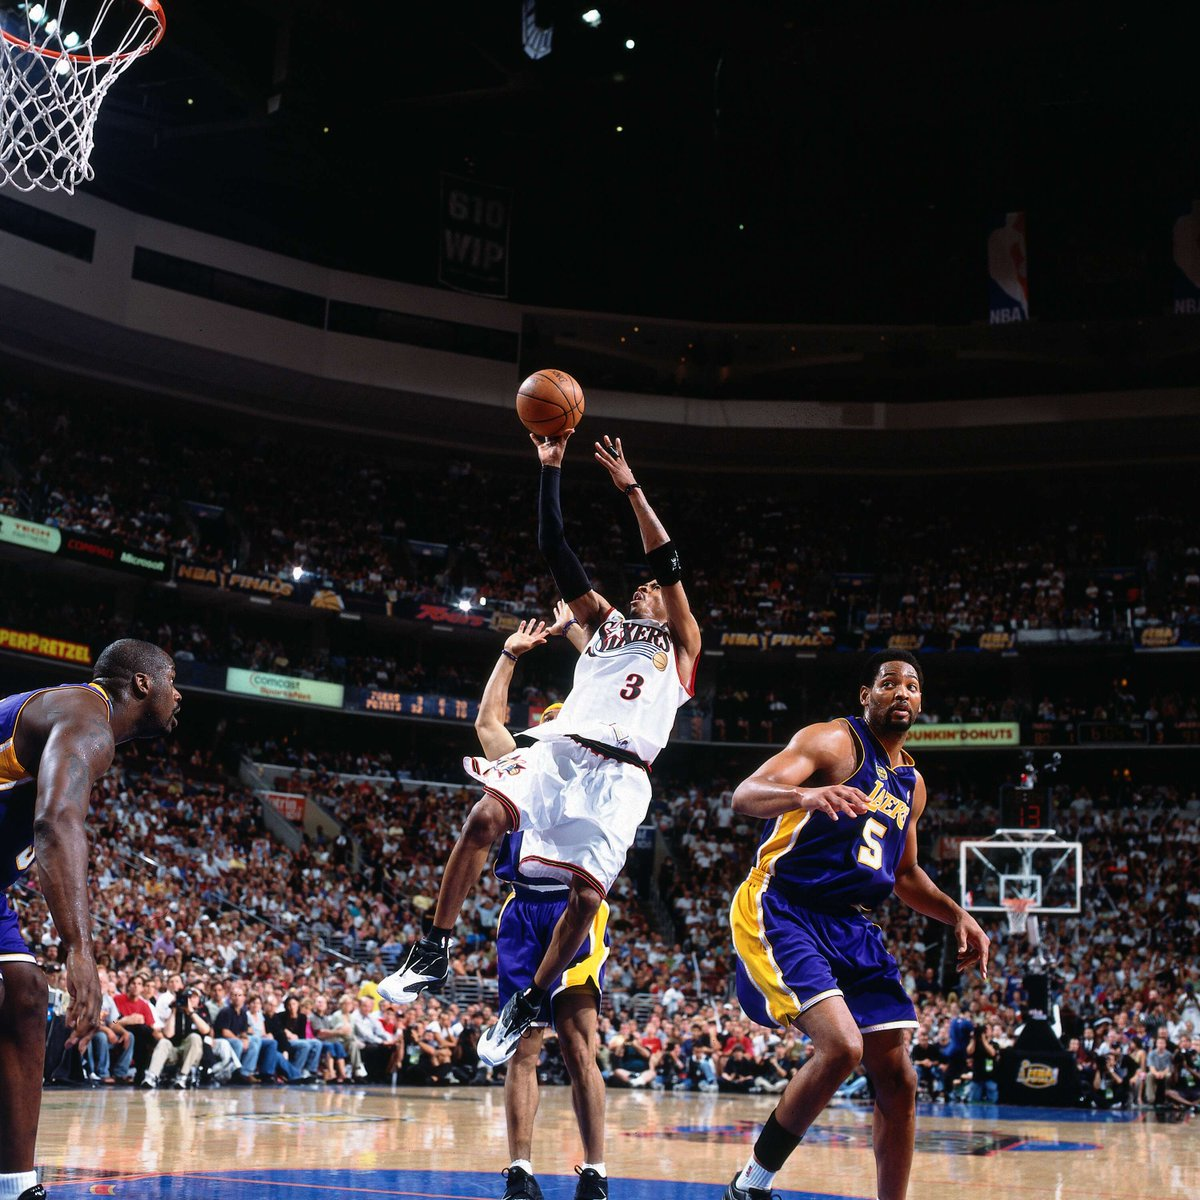 Allen Iverson the man who redefined the game and showed the world that Heart > Height. Welcome AI! #16HoopClass https://t.co/2QMWH3yNi5